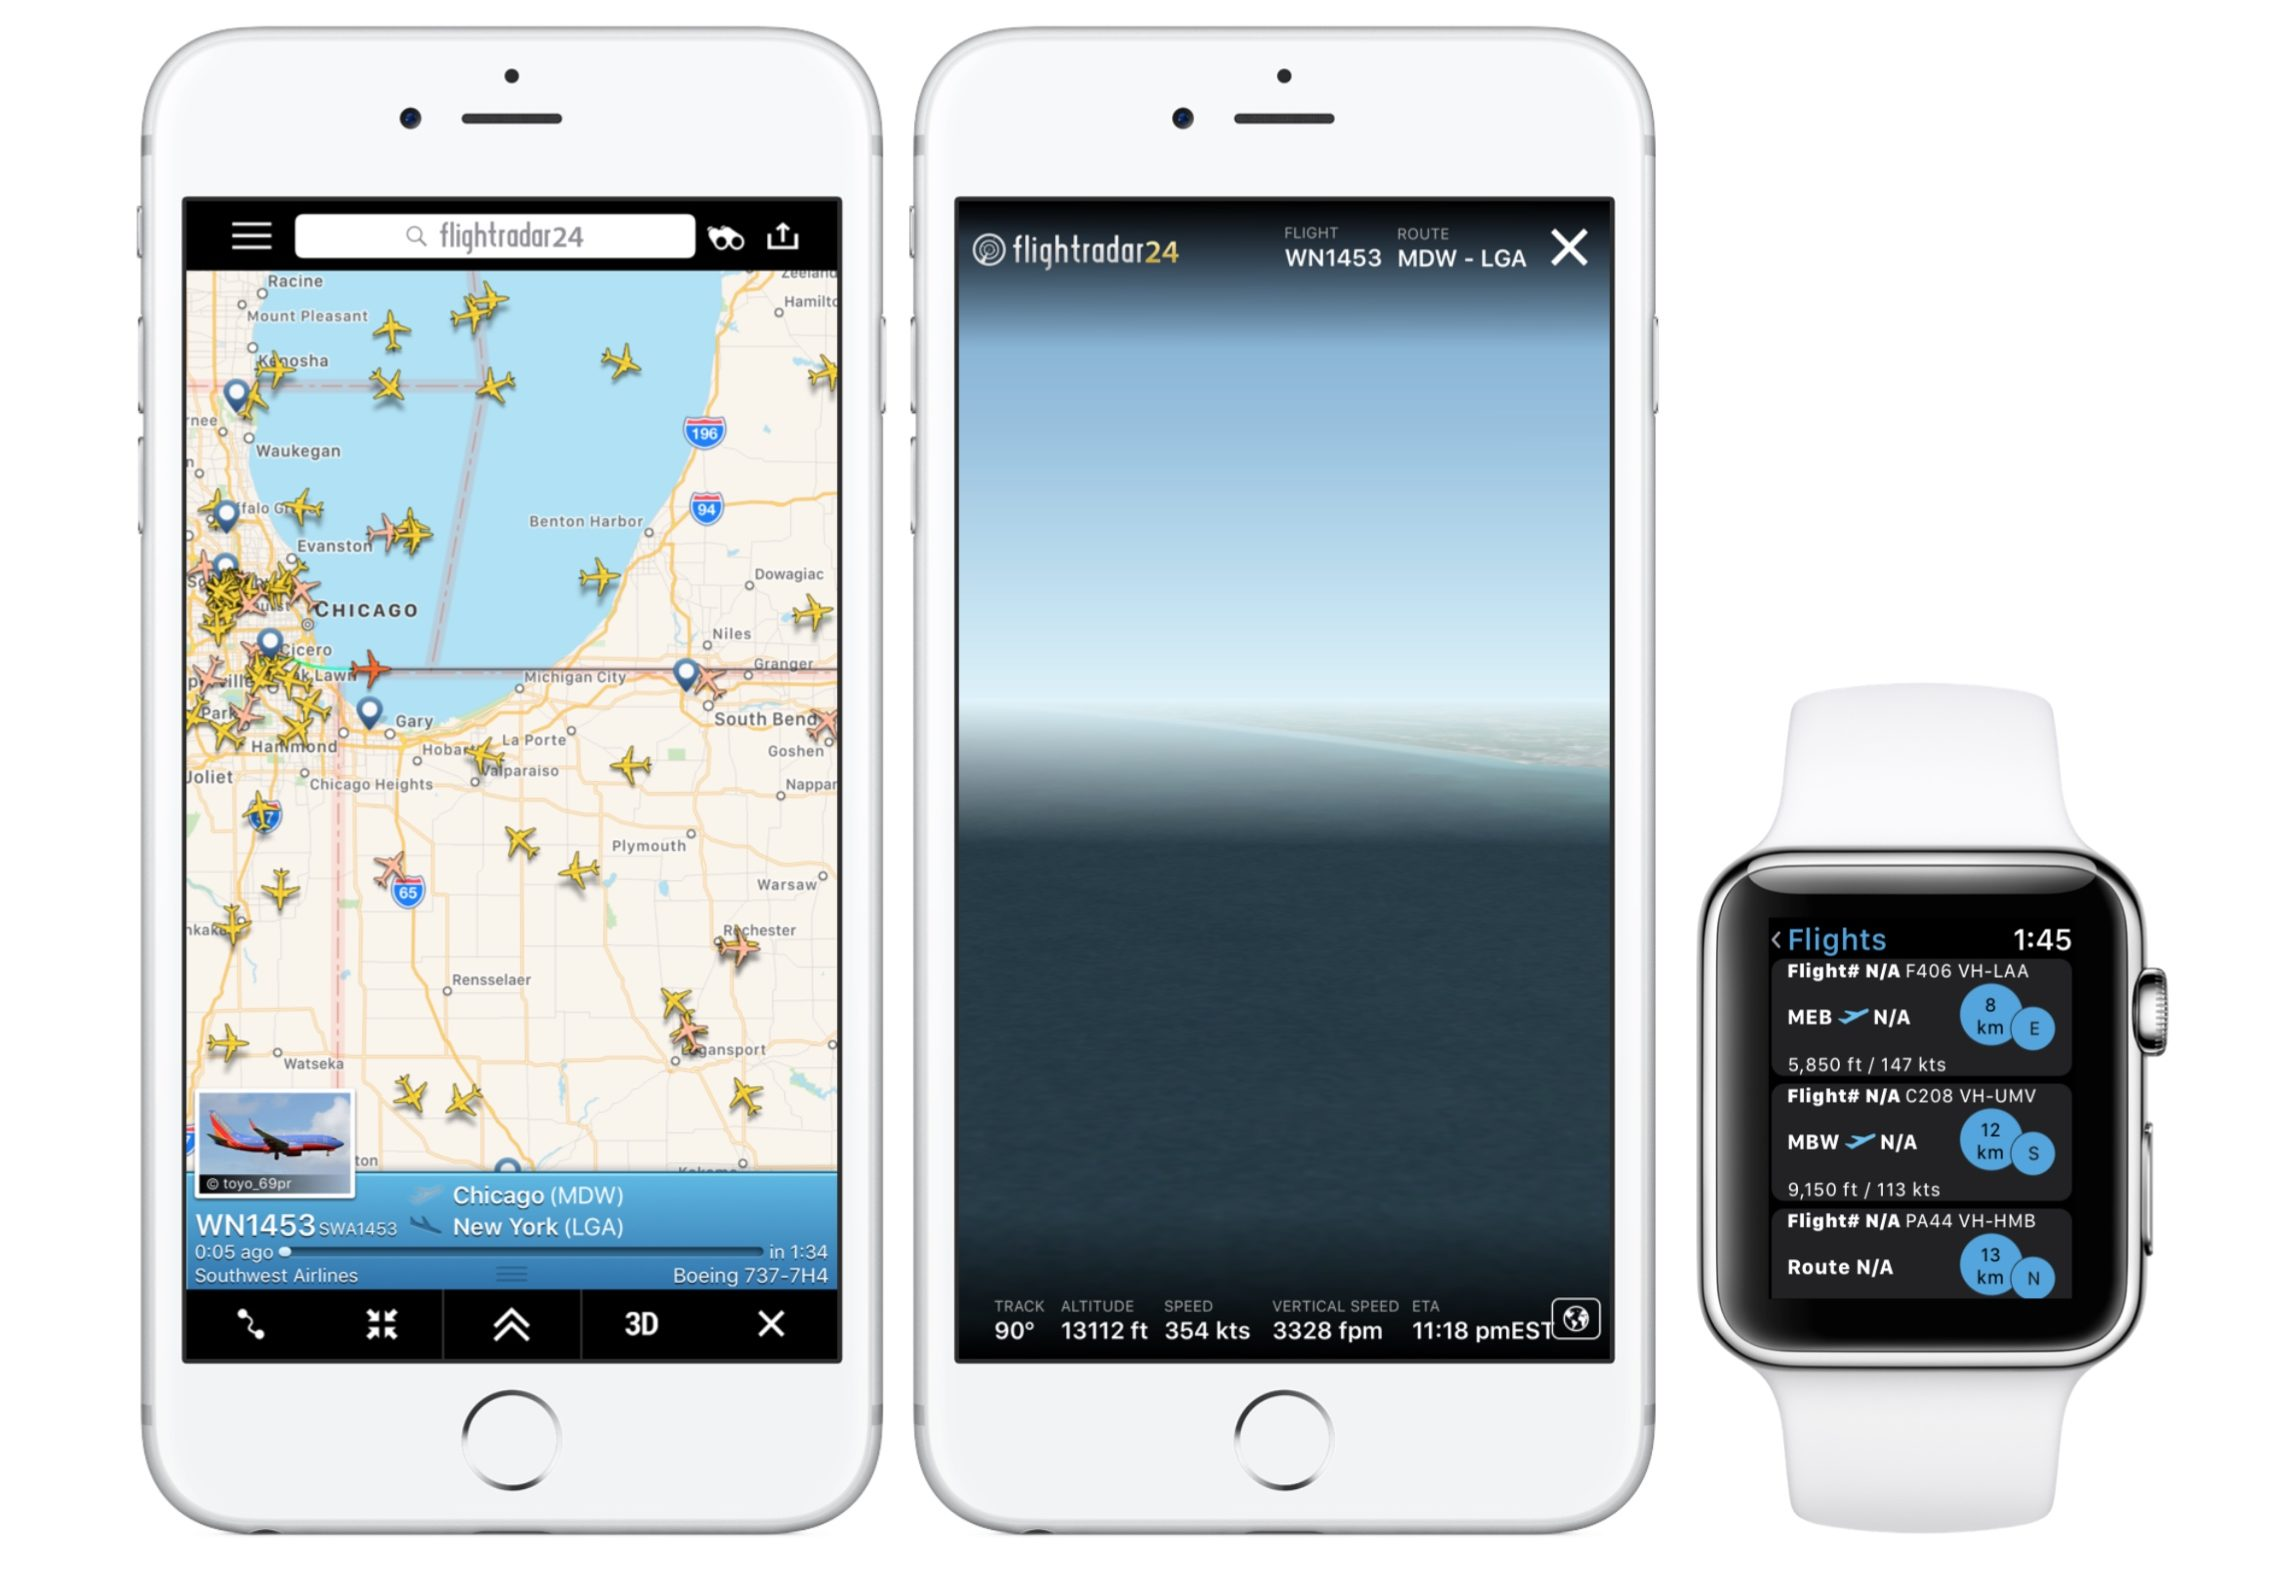 flight tracker apps for iphone - flightradar24